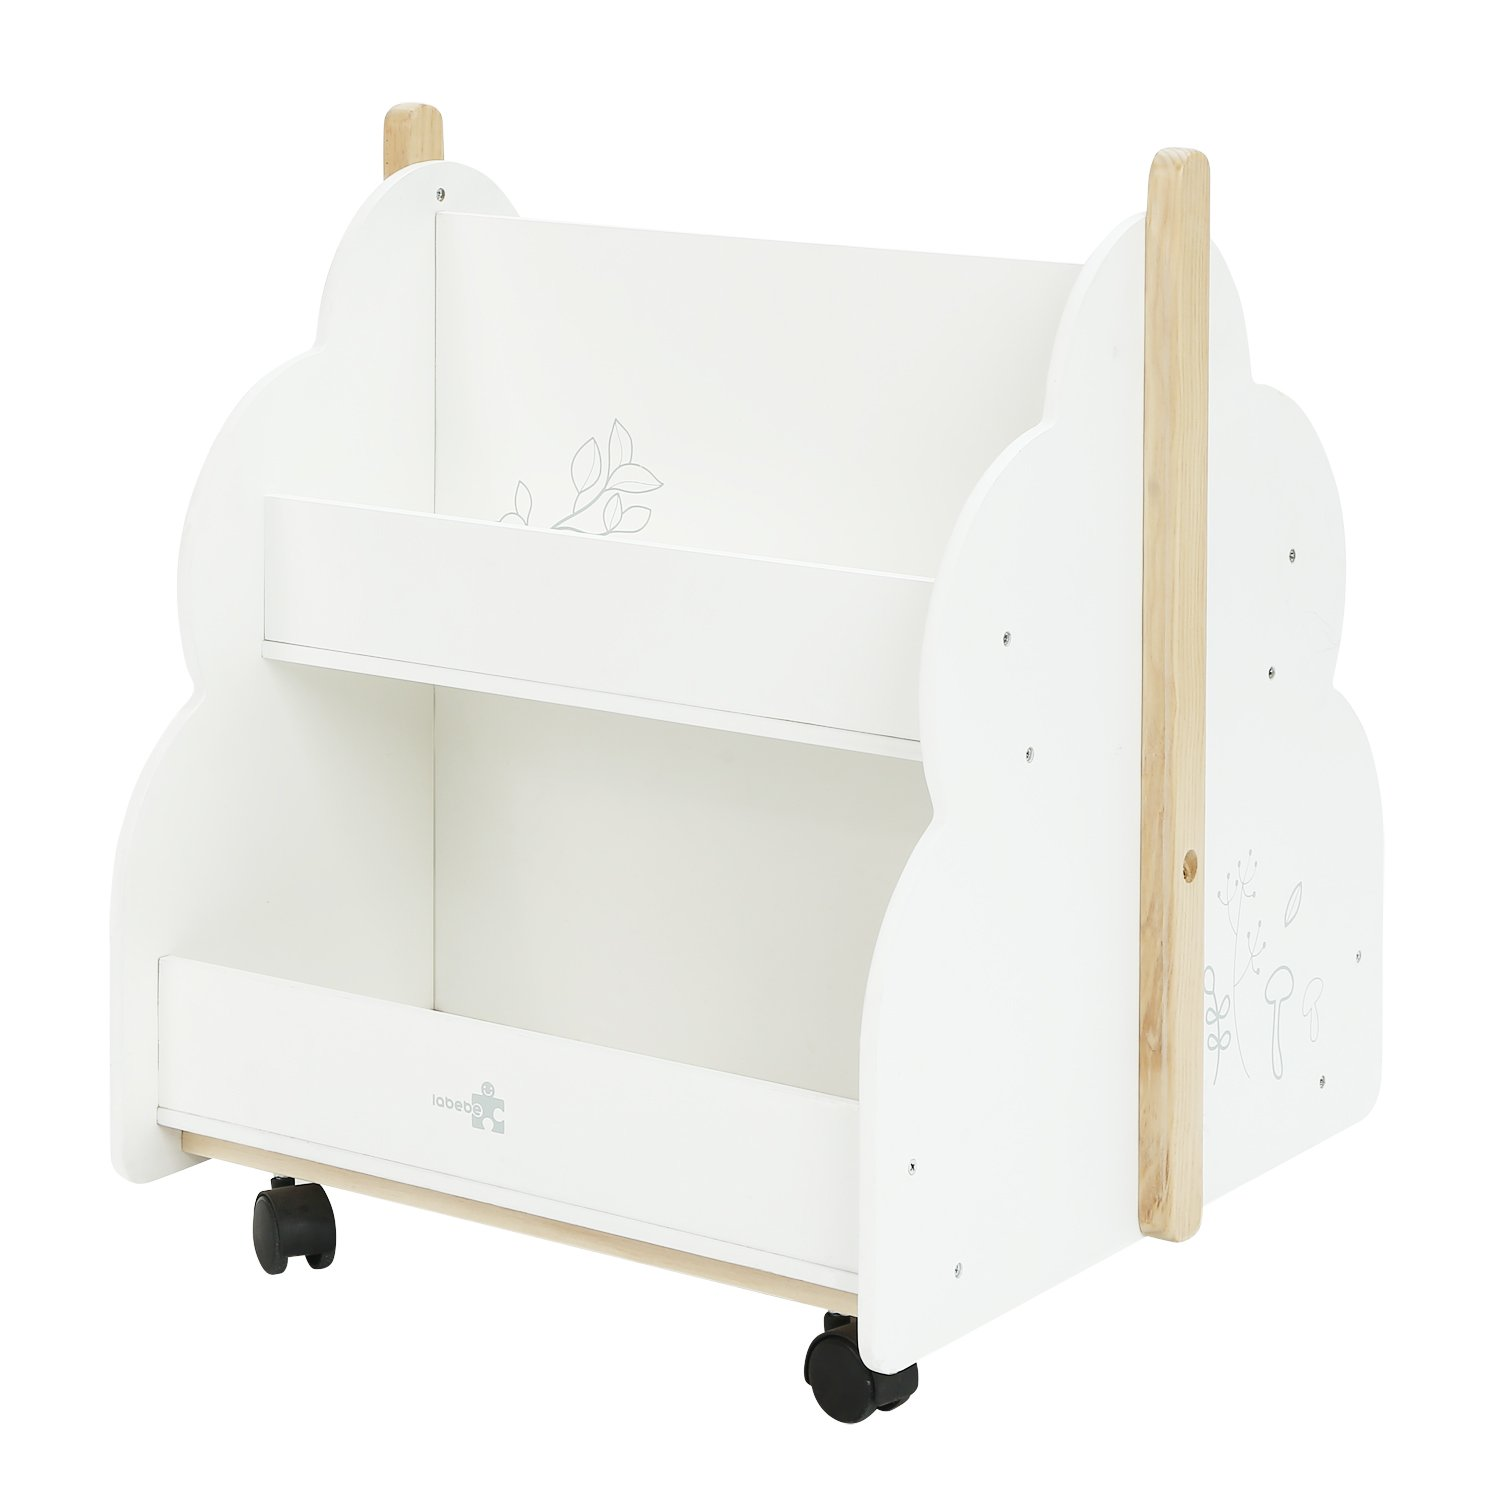 labebe Kid Bookshelf with Wheels, Wood Kid Bookshelf (White Bird Printed) for 1 Year Up, Book Rack/Kid Bookshelf/Child Bookshelf/Toddler Bookshelf/Child Book Display/Kid Small Bookshelf Toy Storage